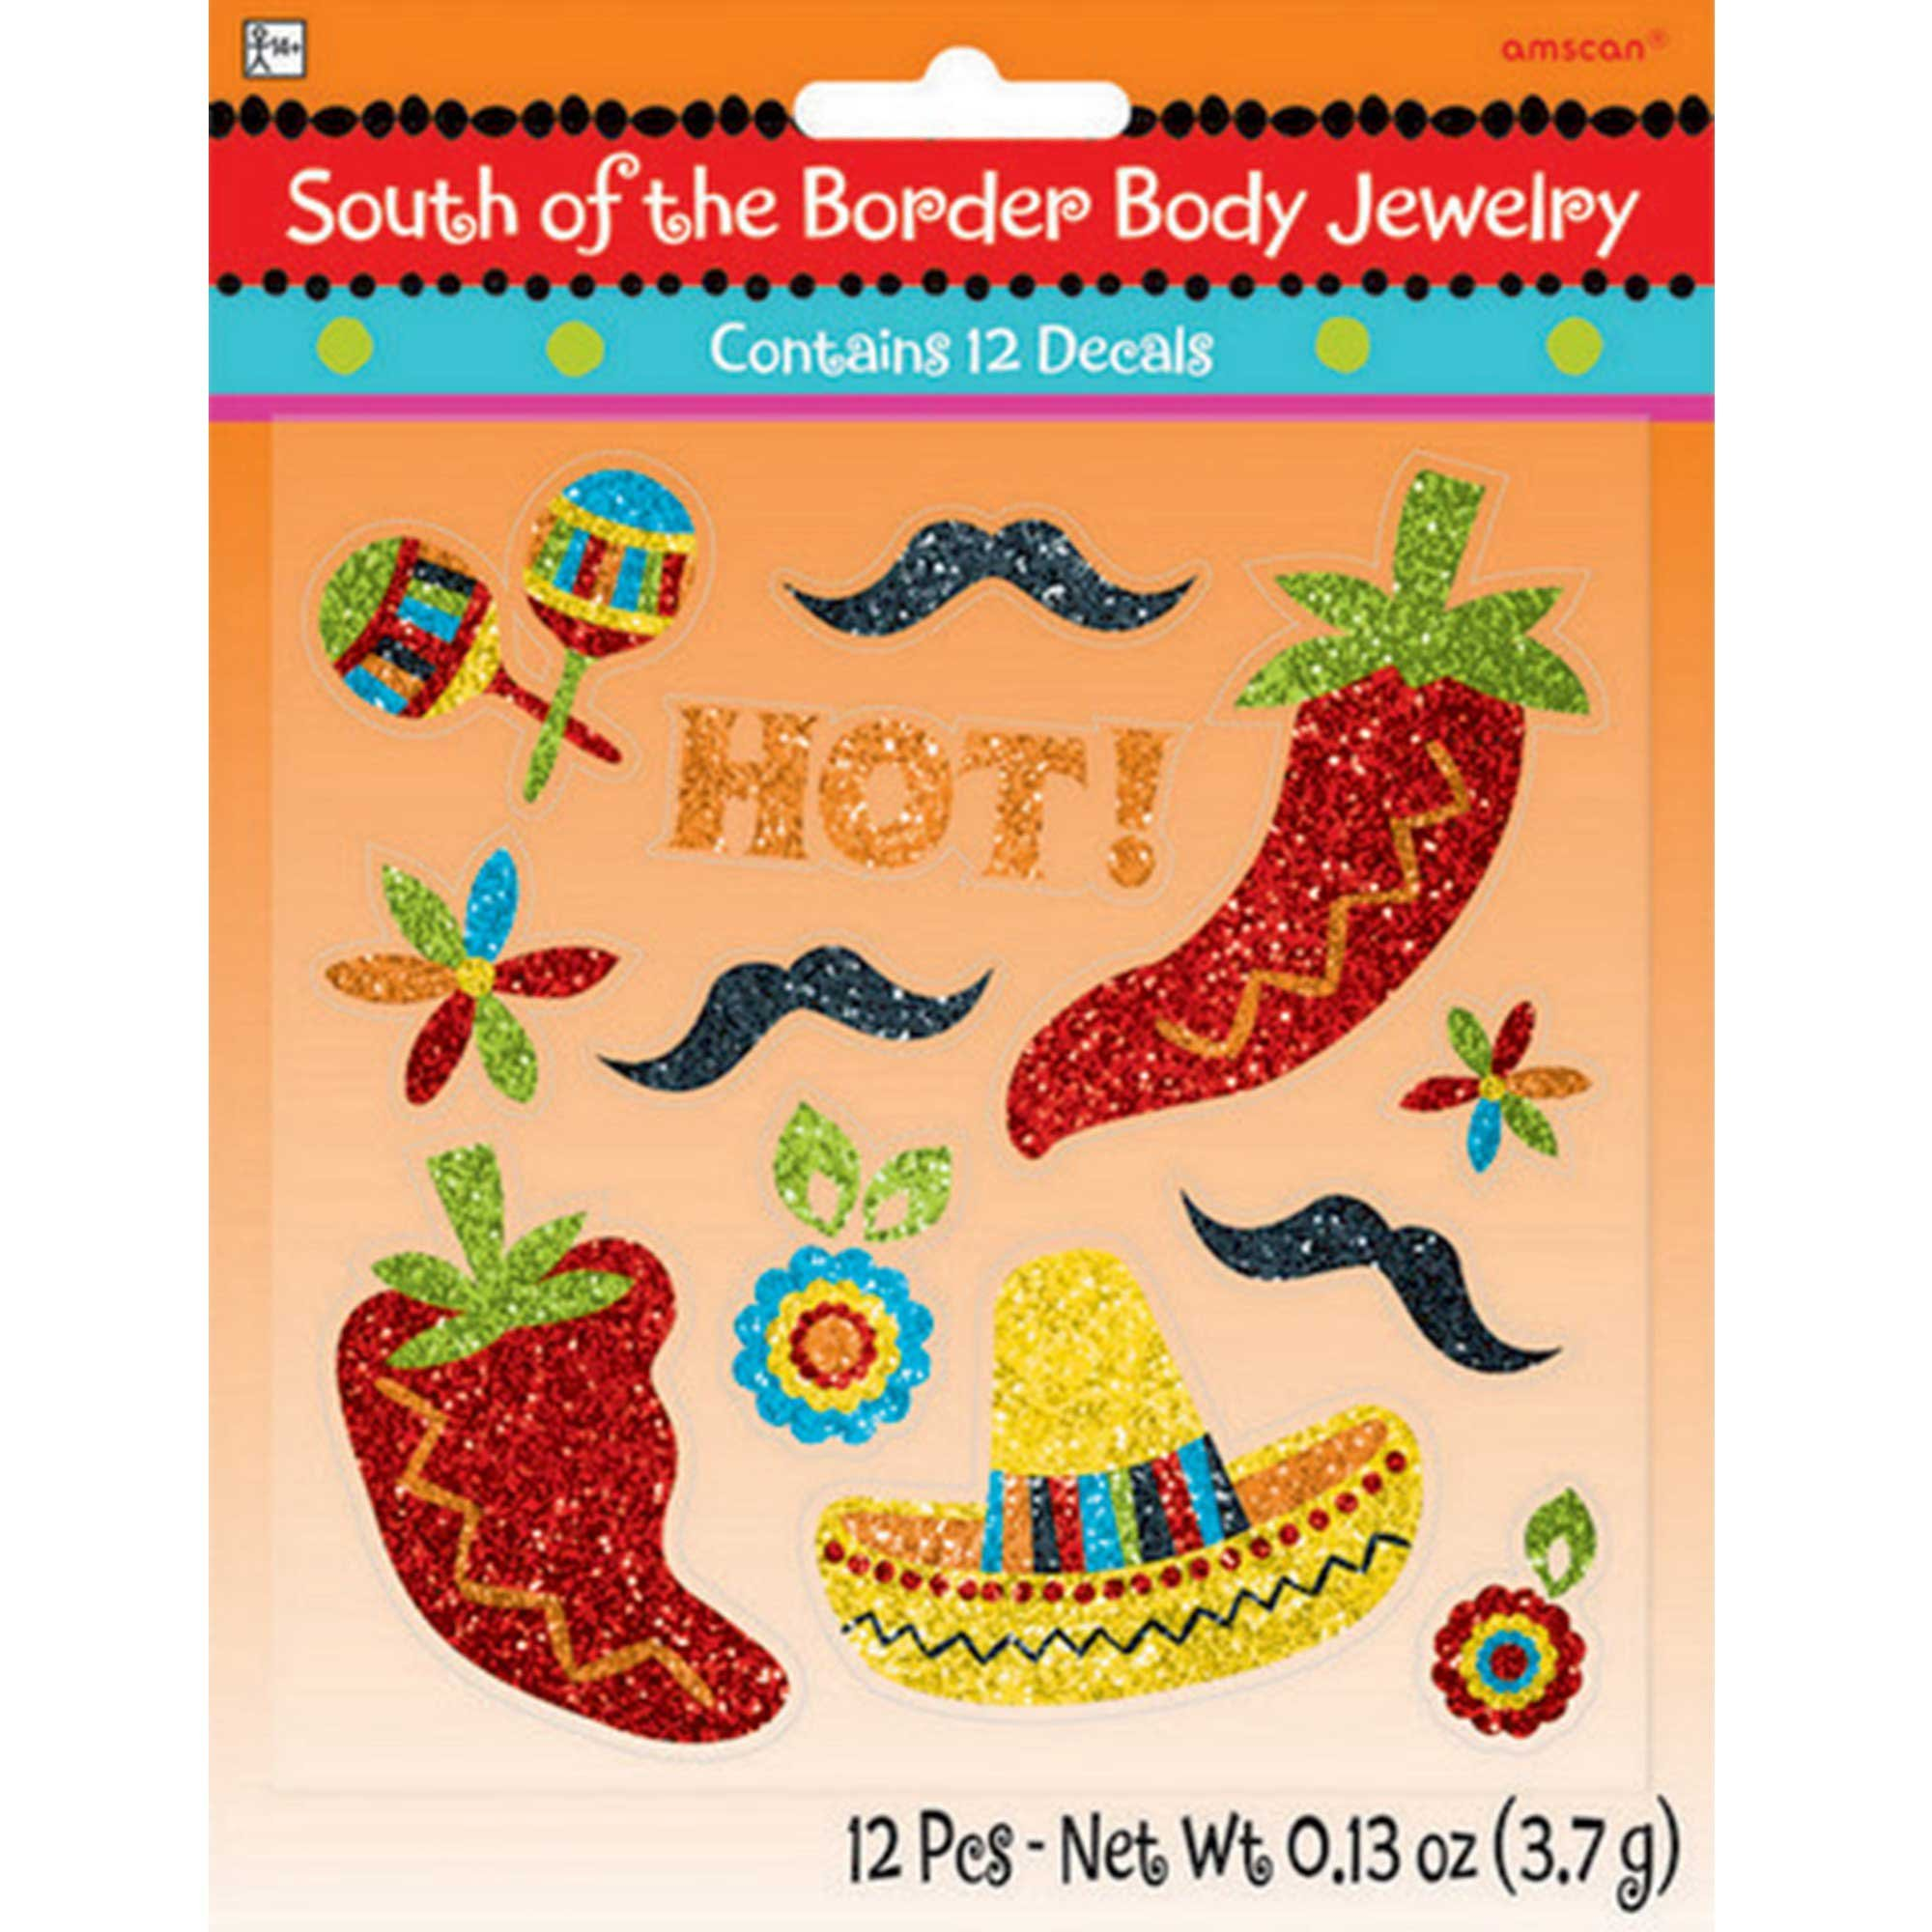 Fiesta South of the Border Body Jewelry